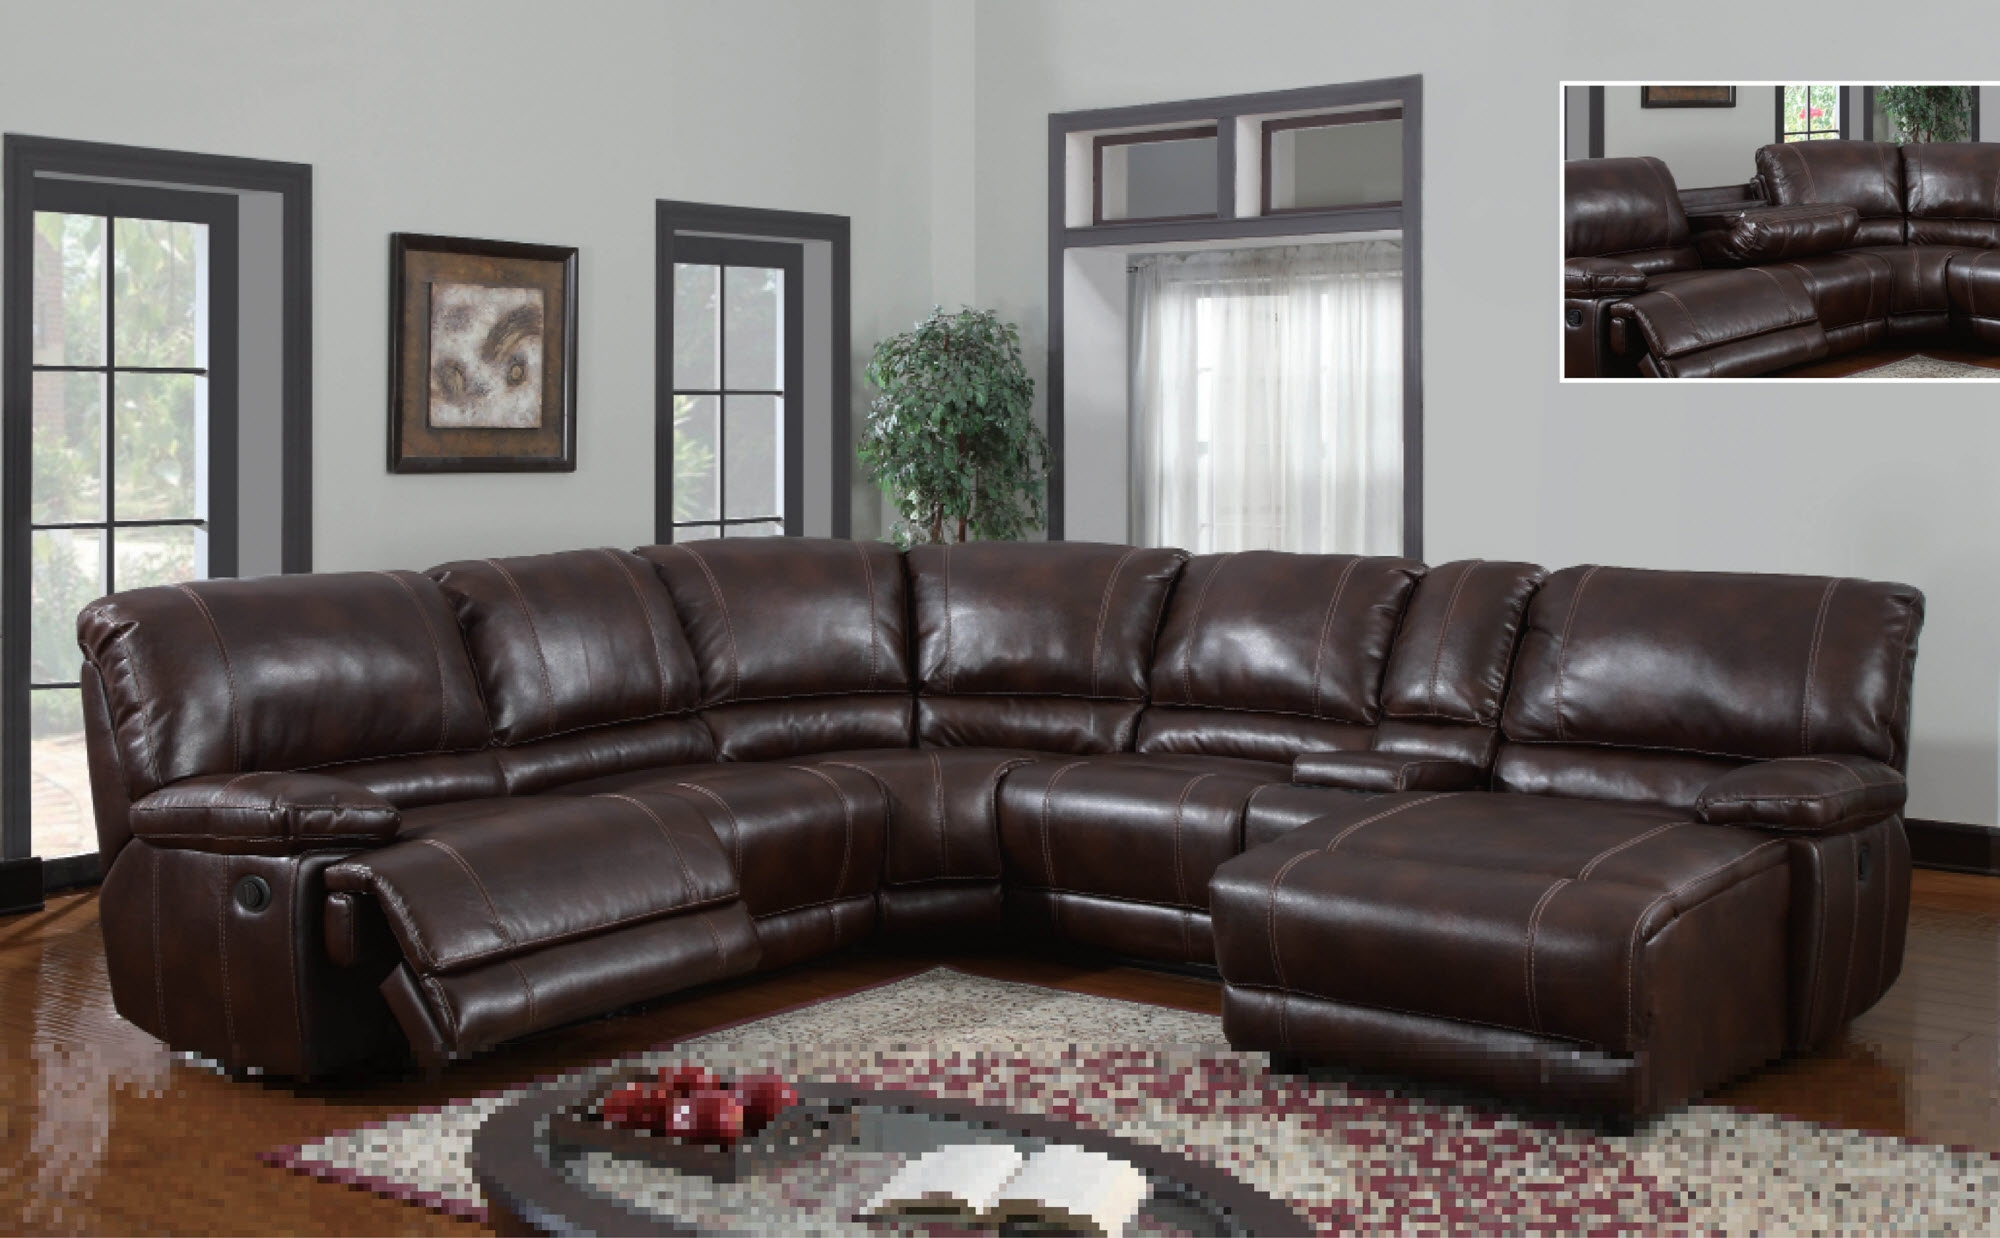 Elegant Sectional Sofas With Chaise And Recliner 36 For Your Small Throughout Elegant Sectional Sofas (View 11 of 12)